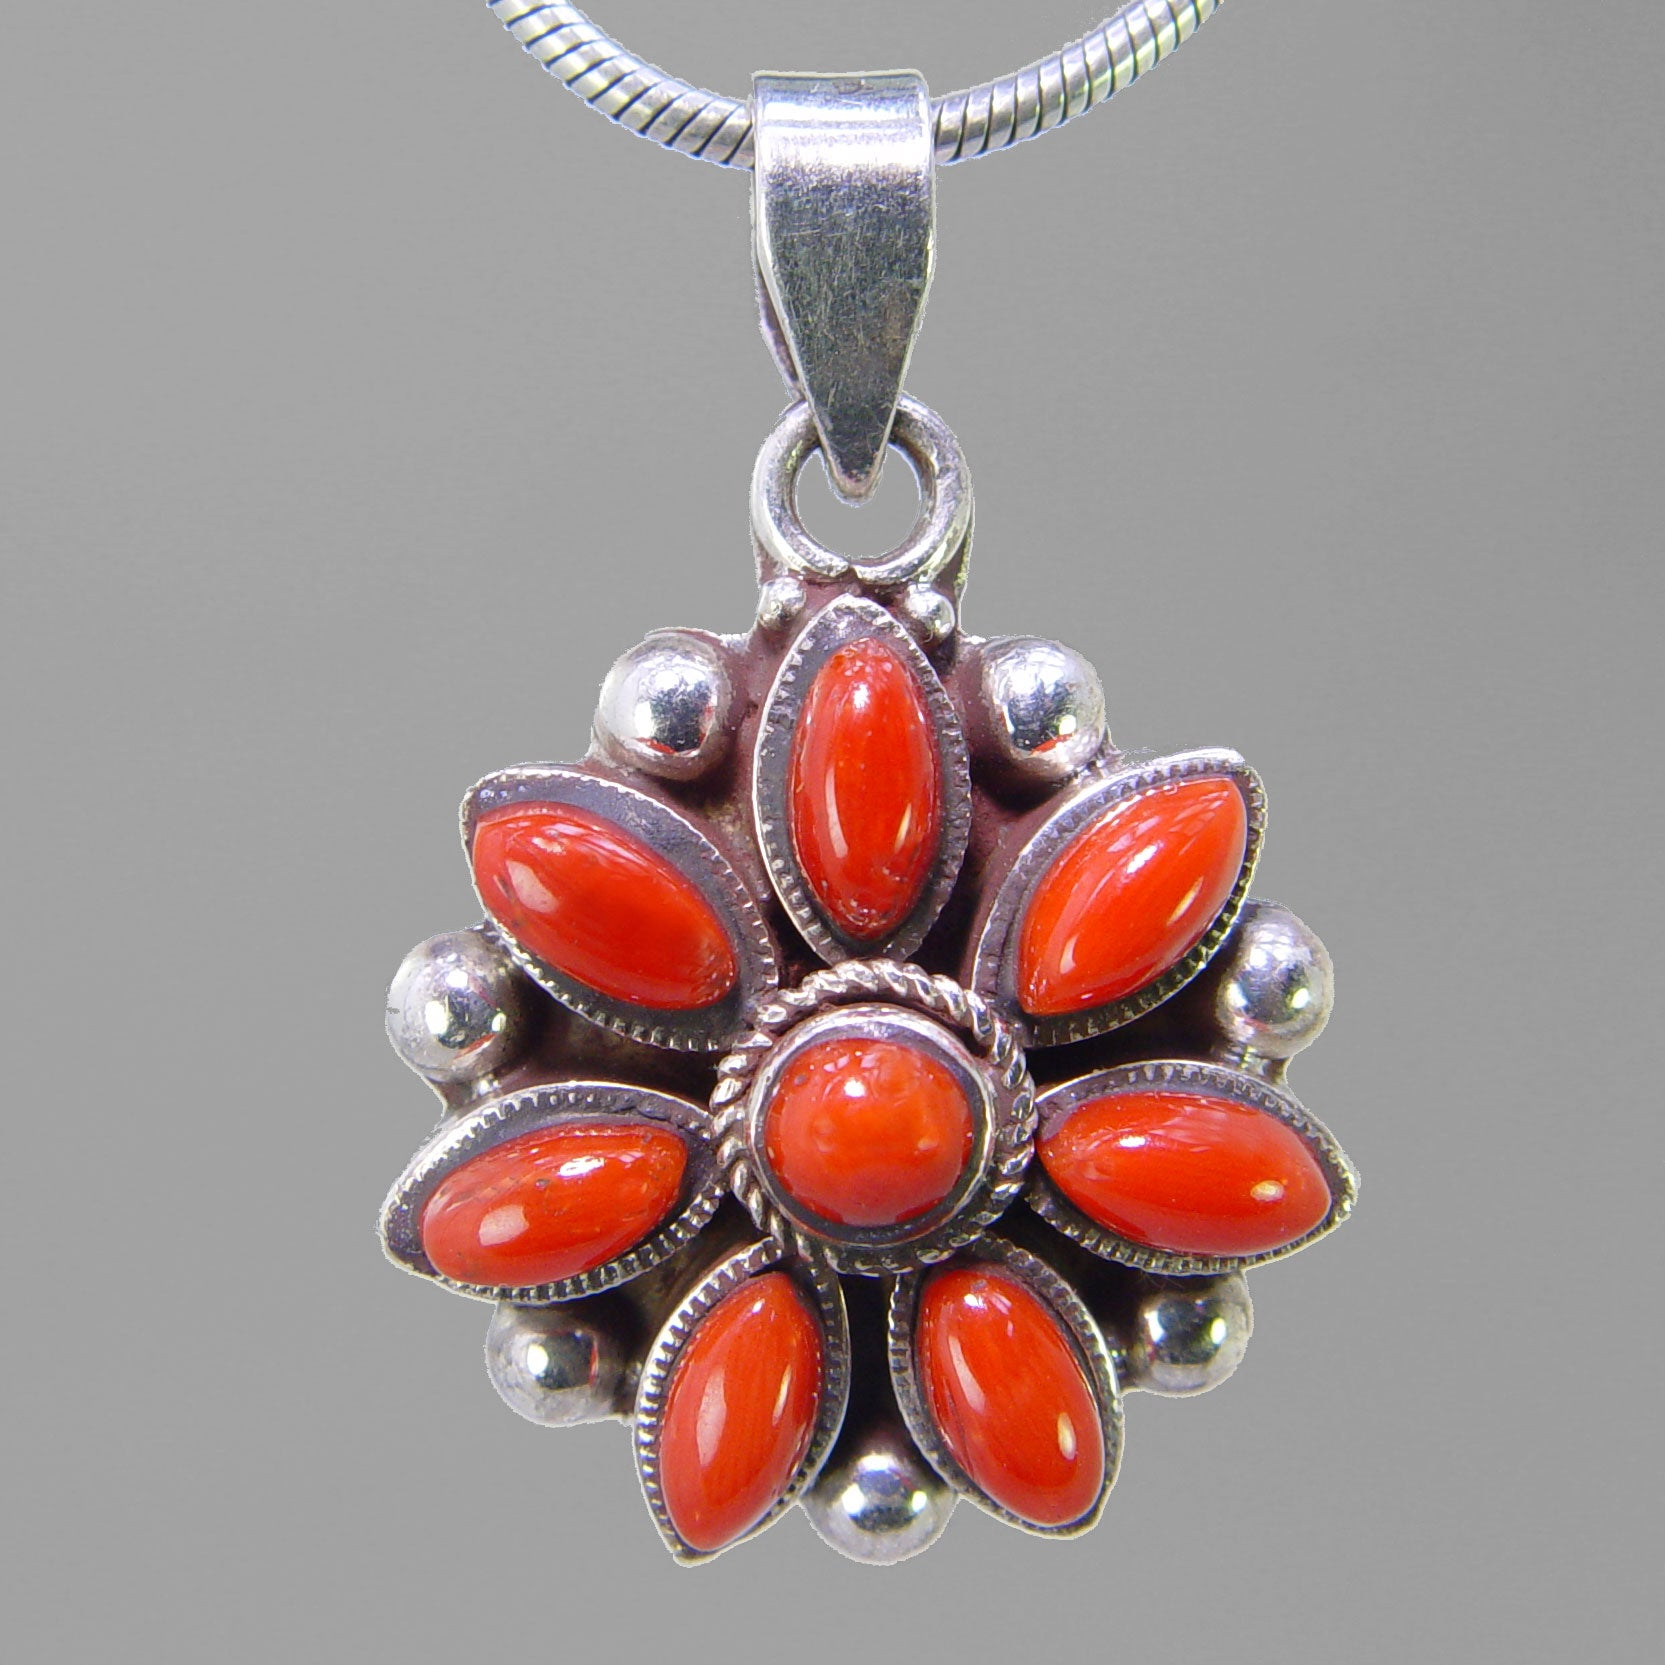 Red Coral 6 ctw Bezel Set With 8 Small Stones Sterling Silver Pendant